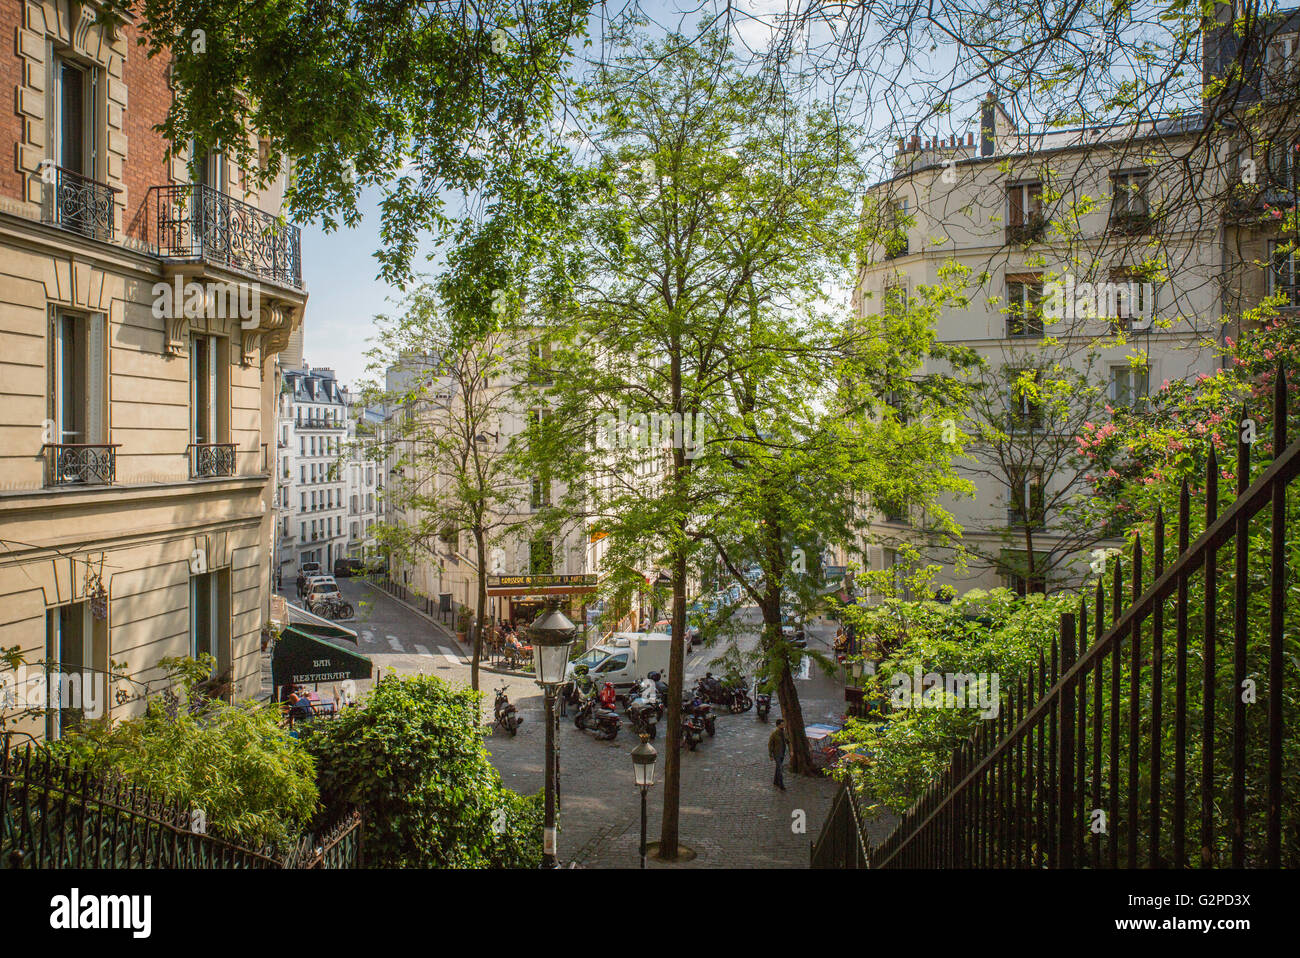 Montmartre in the Spring - view from top of stairs to street below - Stock Image